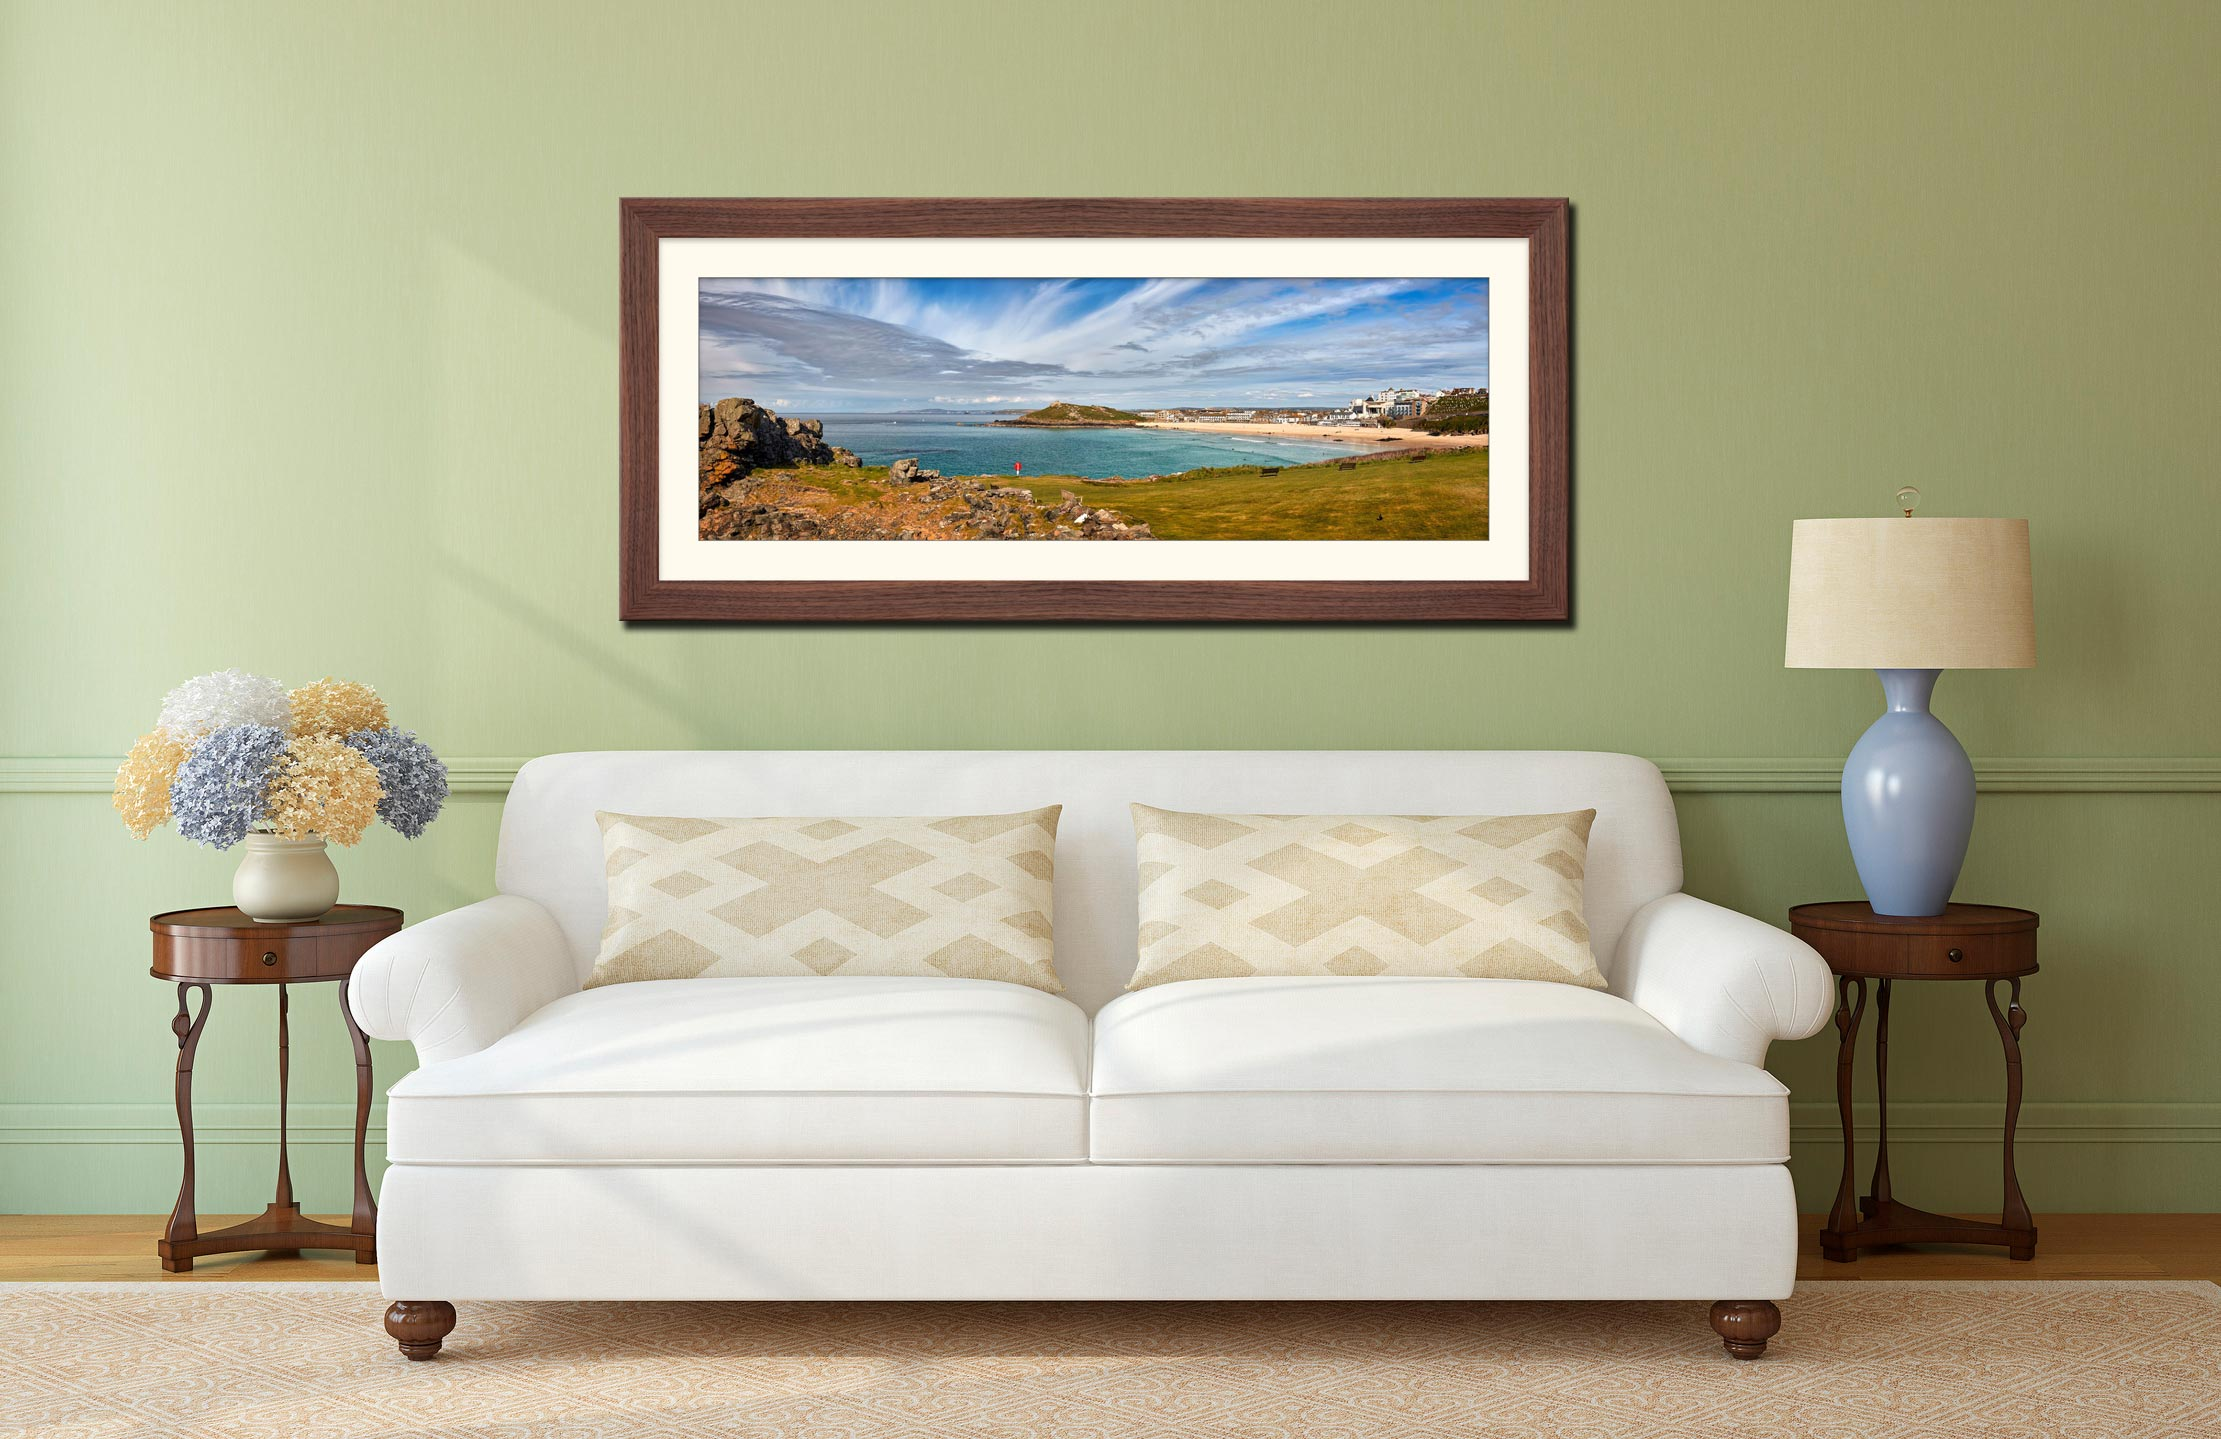 St Ives Bay Panorama - Framed Print with Mount on Wall